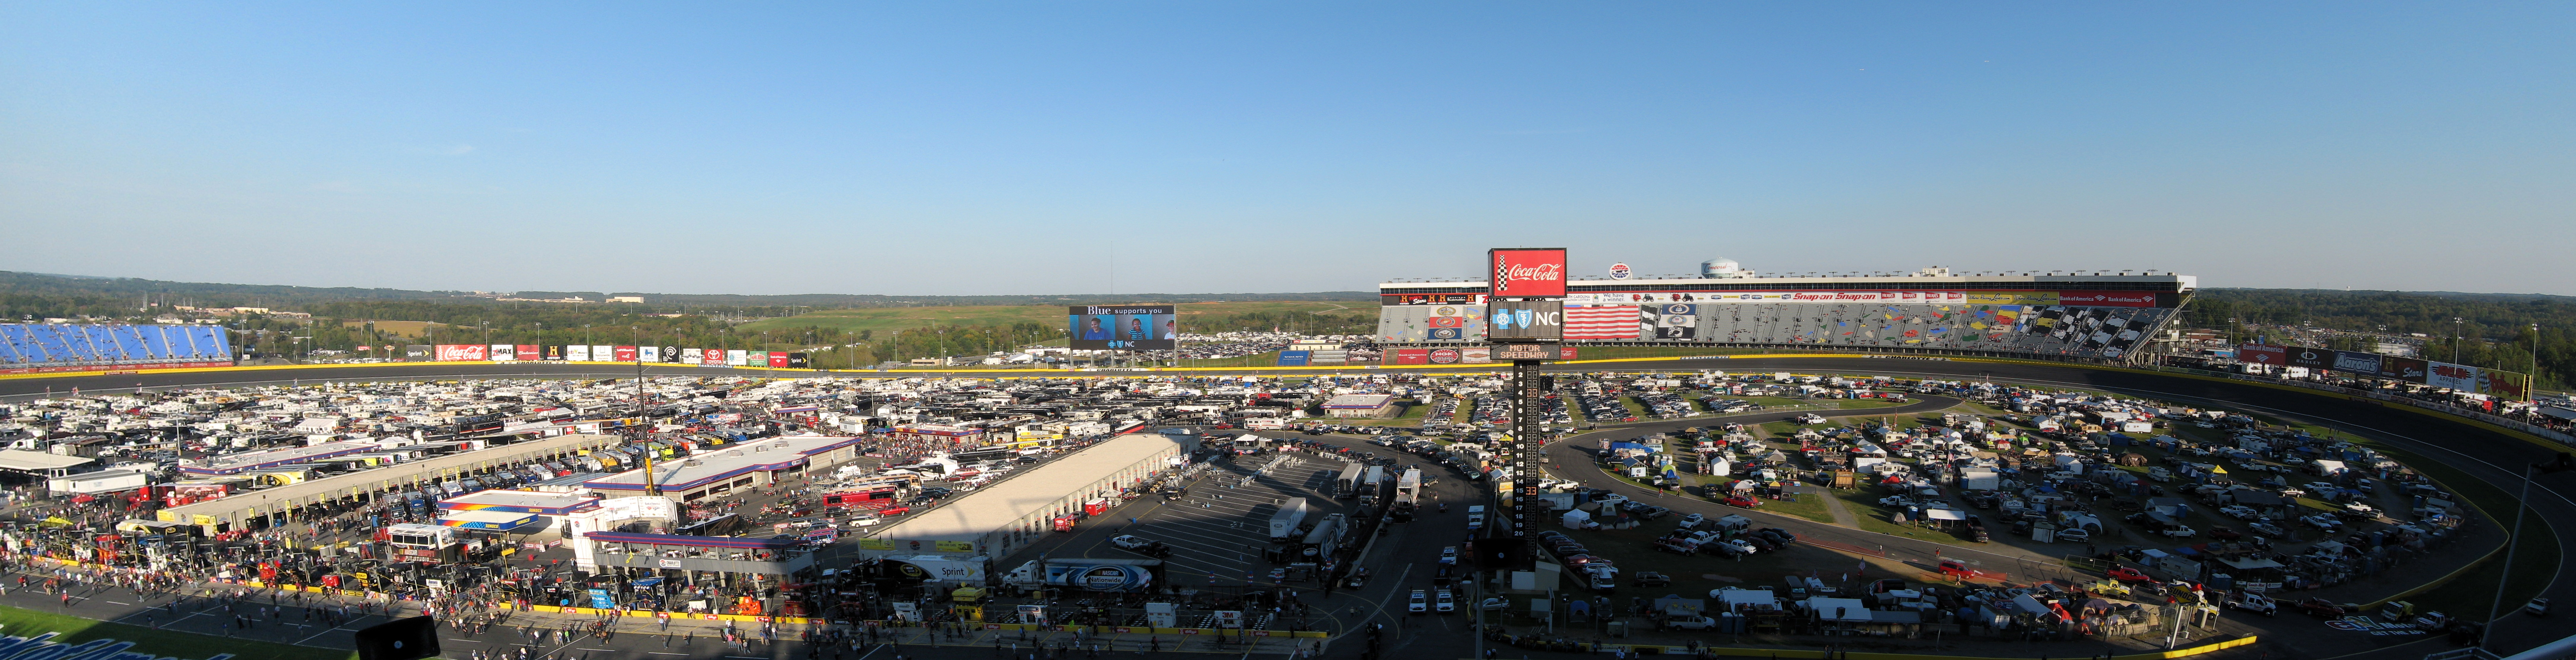 Charlotte Motor Speedway A Panoramic Shot Of Charlotte